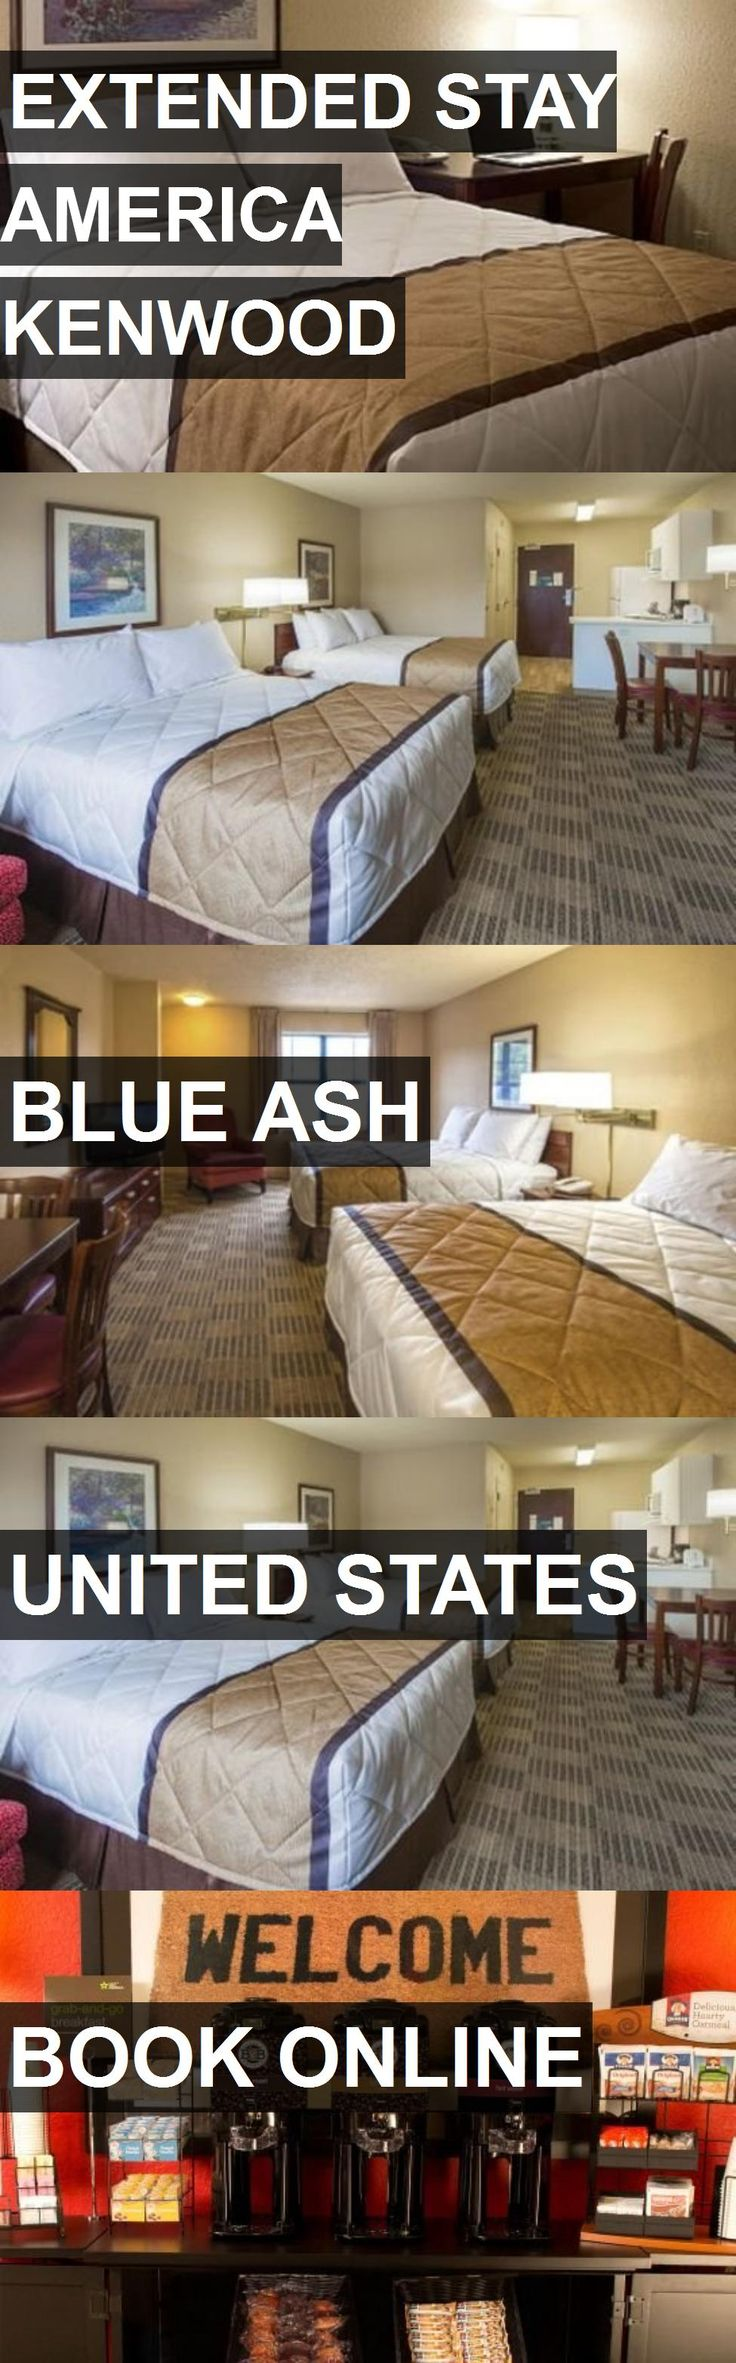 Hotel EXTENDED STAY AMERICA KENWOOD in Blue Ash, United States. For more information, photos, reviews and best prices please follow the link. #UnitedStates #BlueAsh #EXTENDEDSTAYAMERICAKENWOOD #hotel #travel #vacation